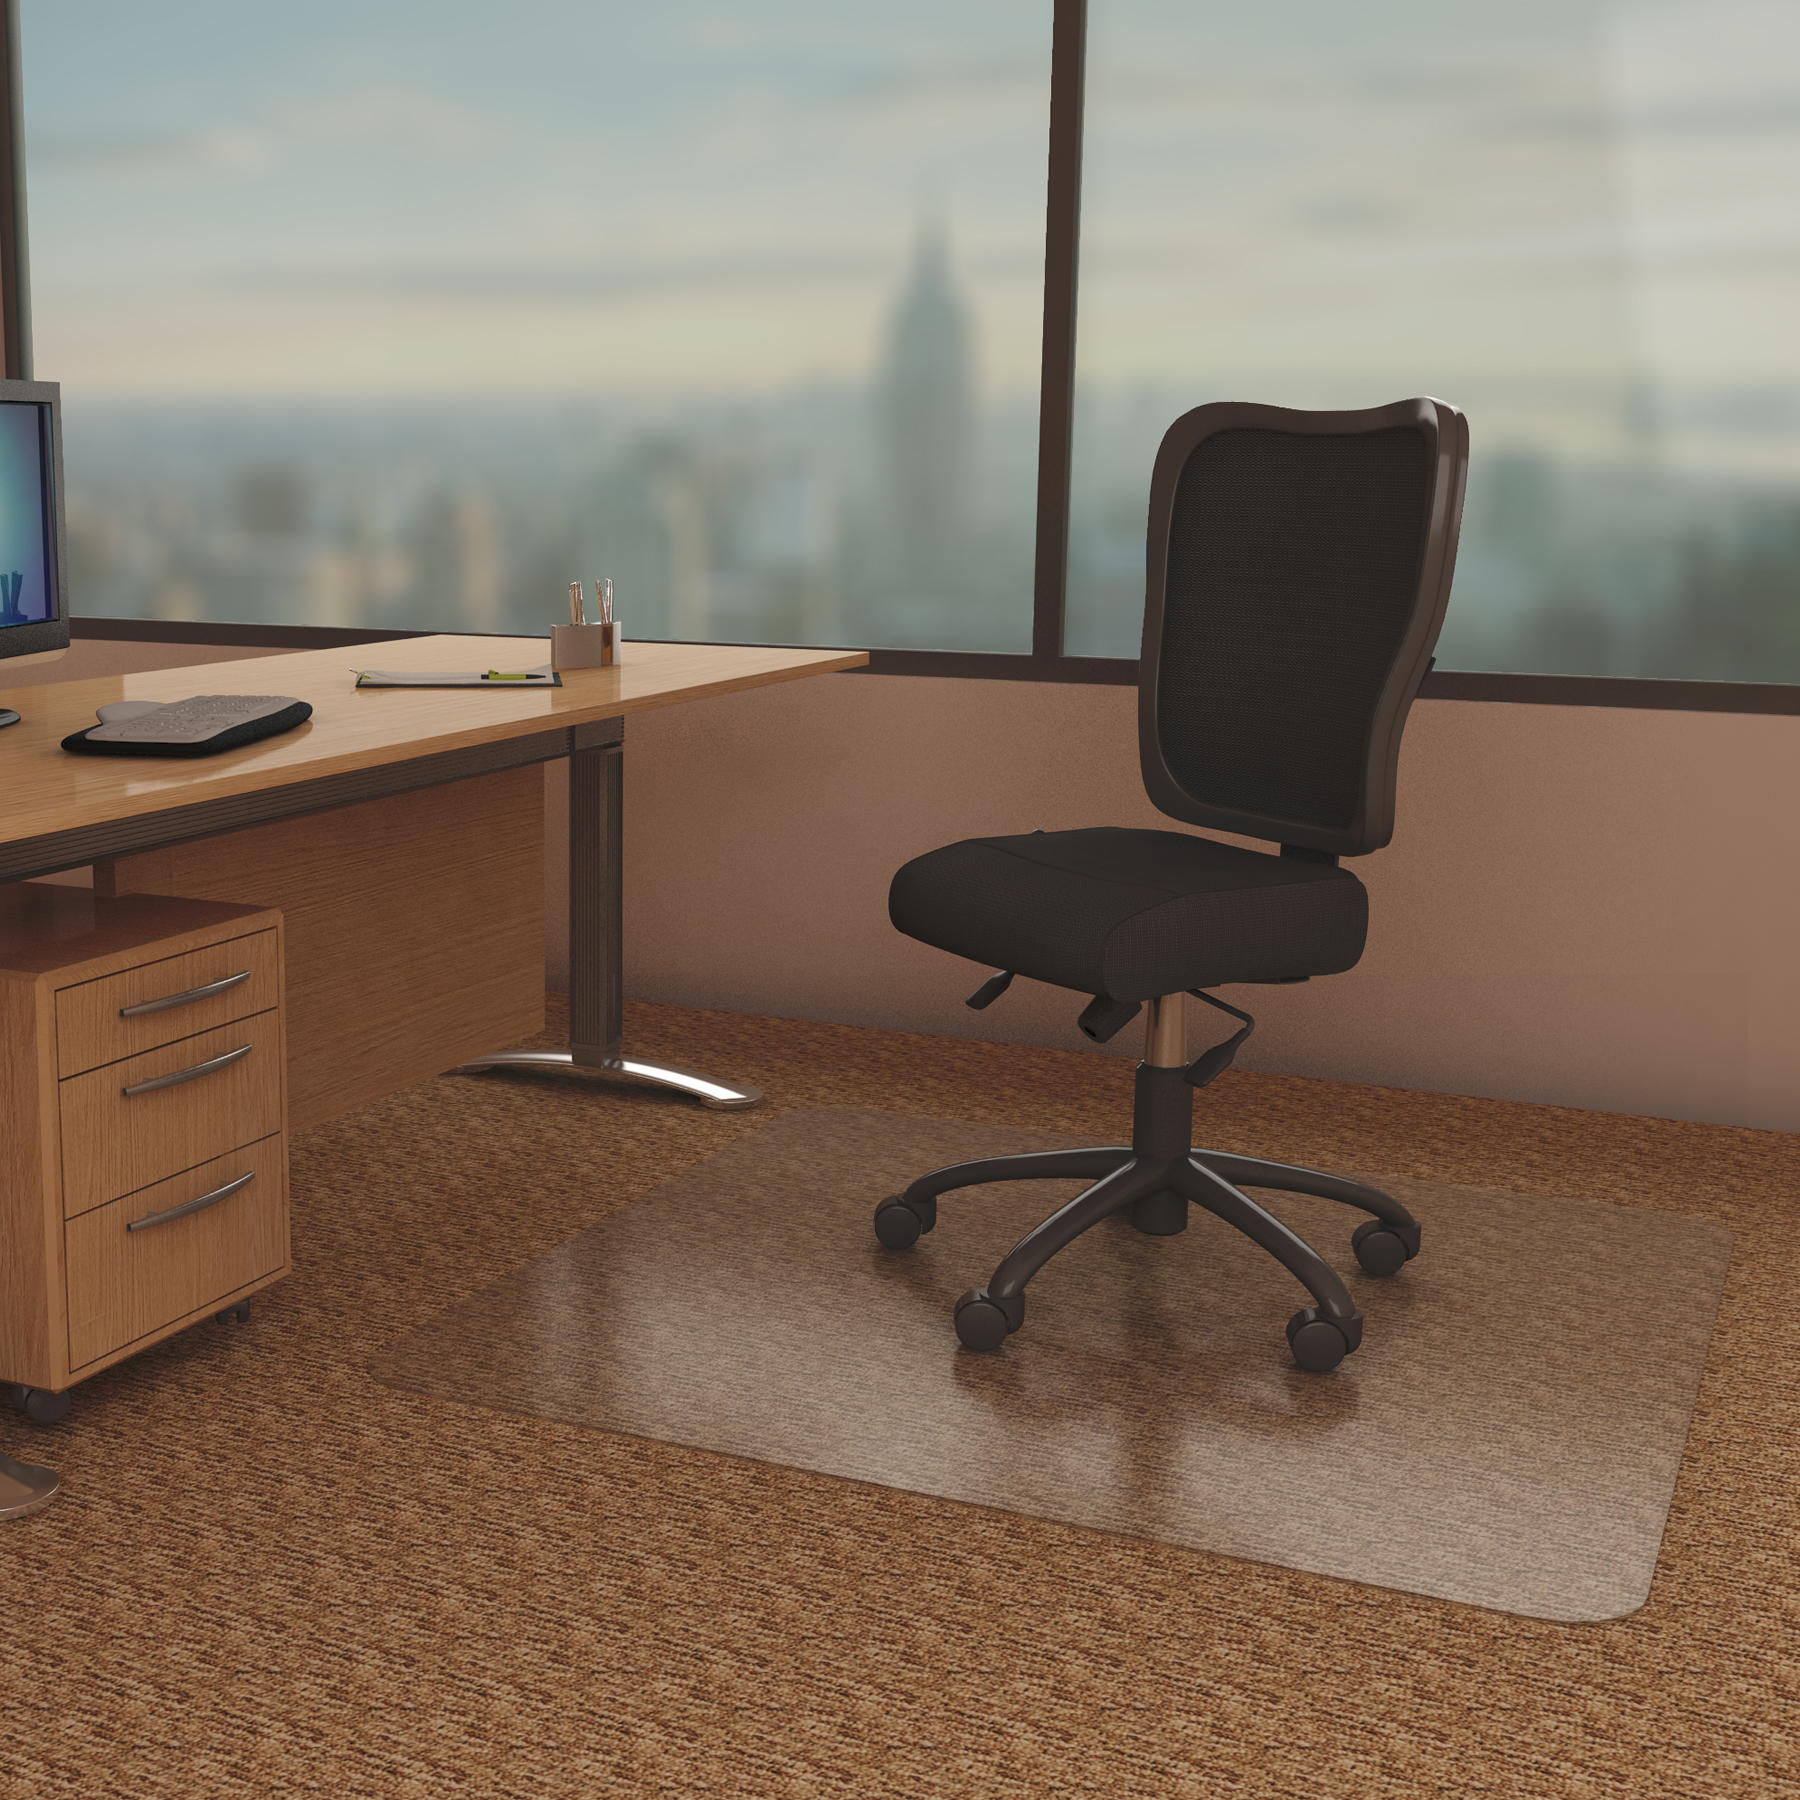 AnchorMat 145 Best Chair Mat for Low Pile Carpet  Chair